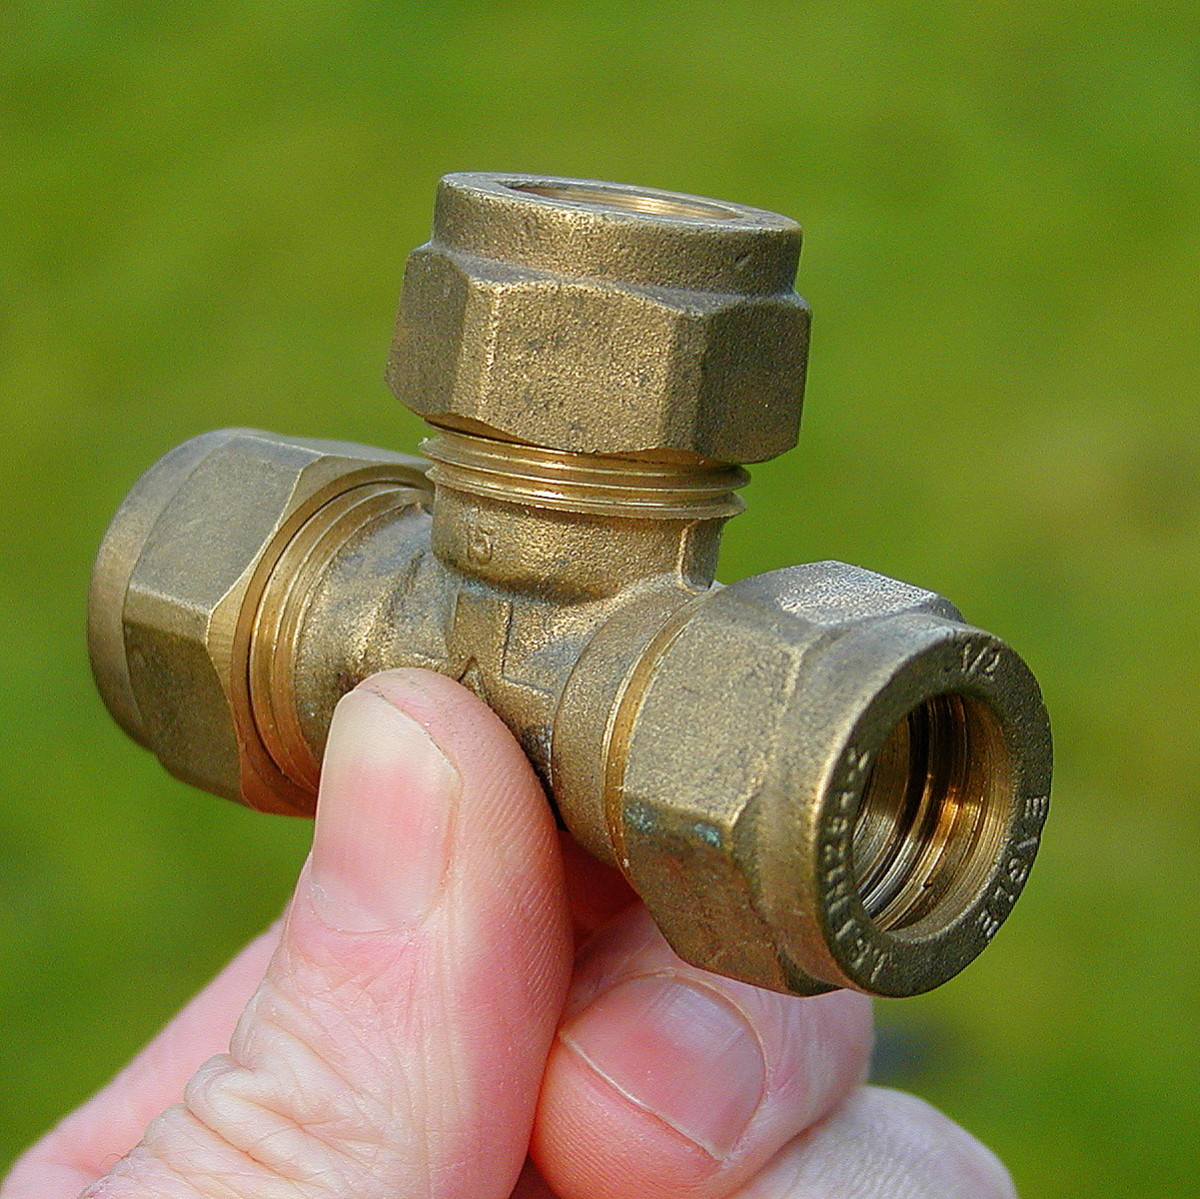 A Complete Guide to Using Plumbing Fittings for Joining PVC, Copper, & PEX Pipe